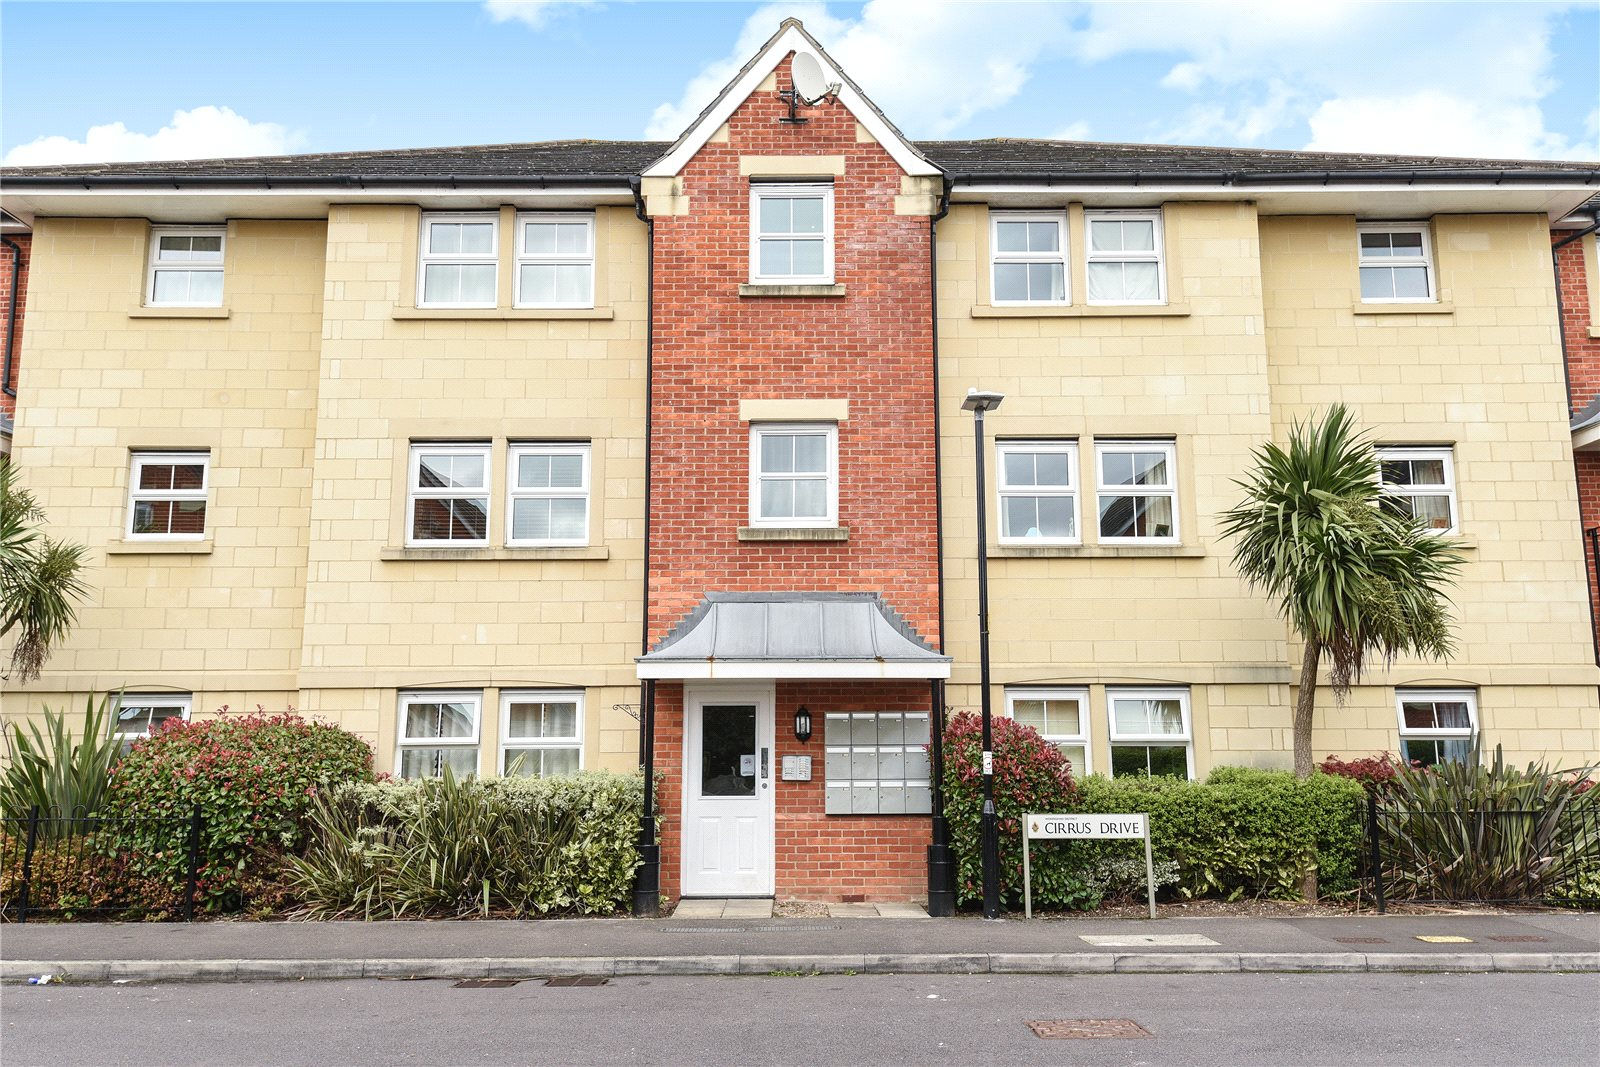 2 Bedrooms Apartment Flat for sale in Cirrus Drive, Shinfield, Reading, Berkshire, RG2